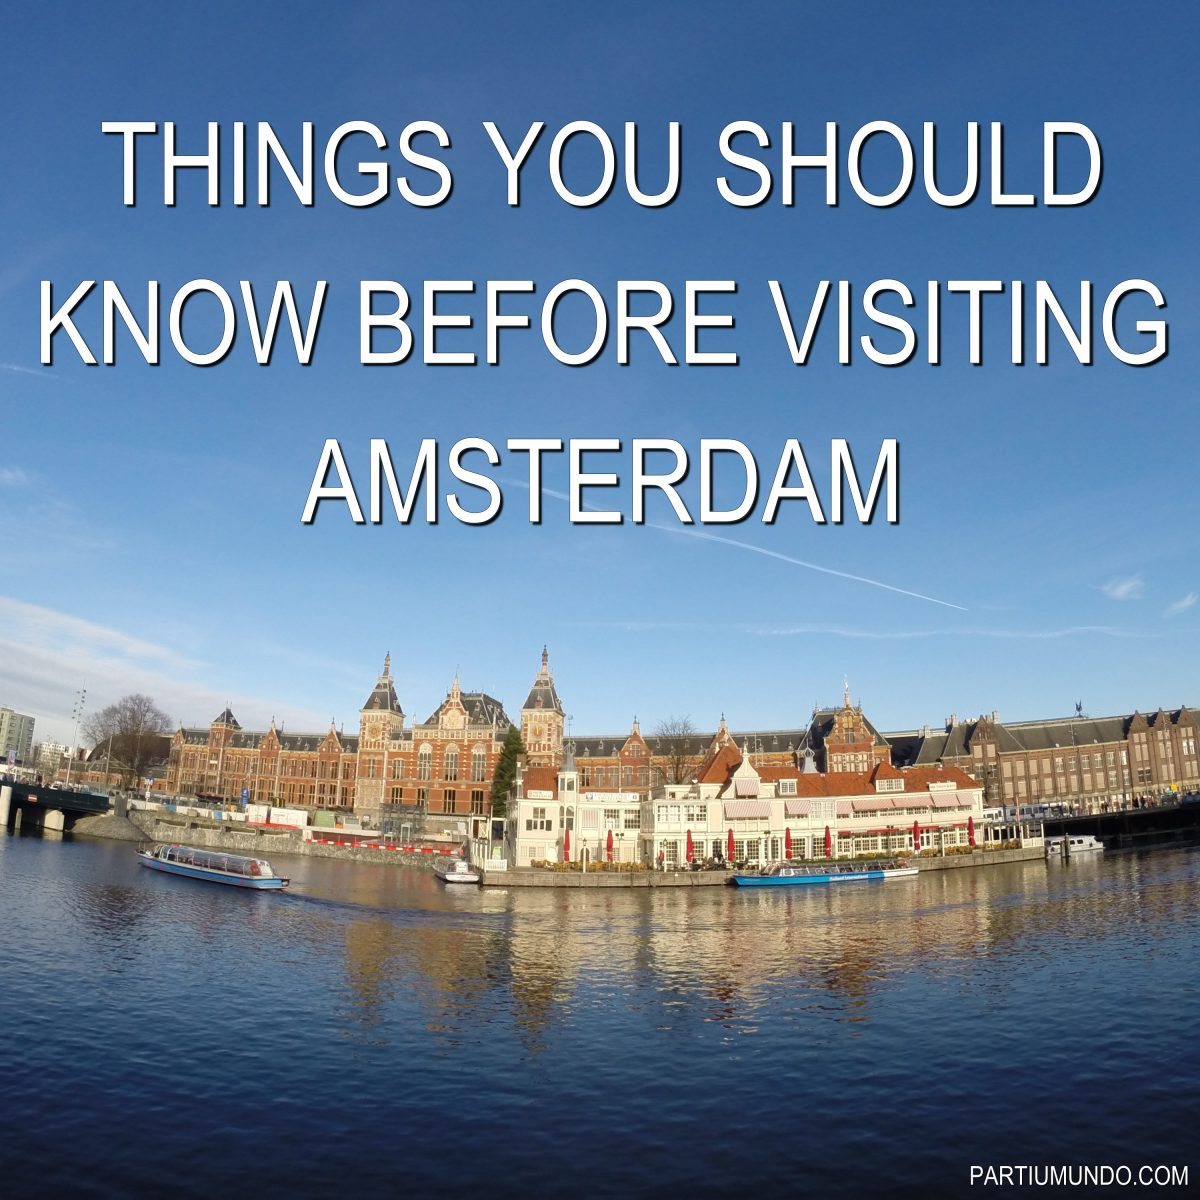 Coisas que voc precisa saber antes de ir amsterd for Haute you should know